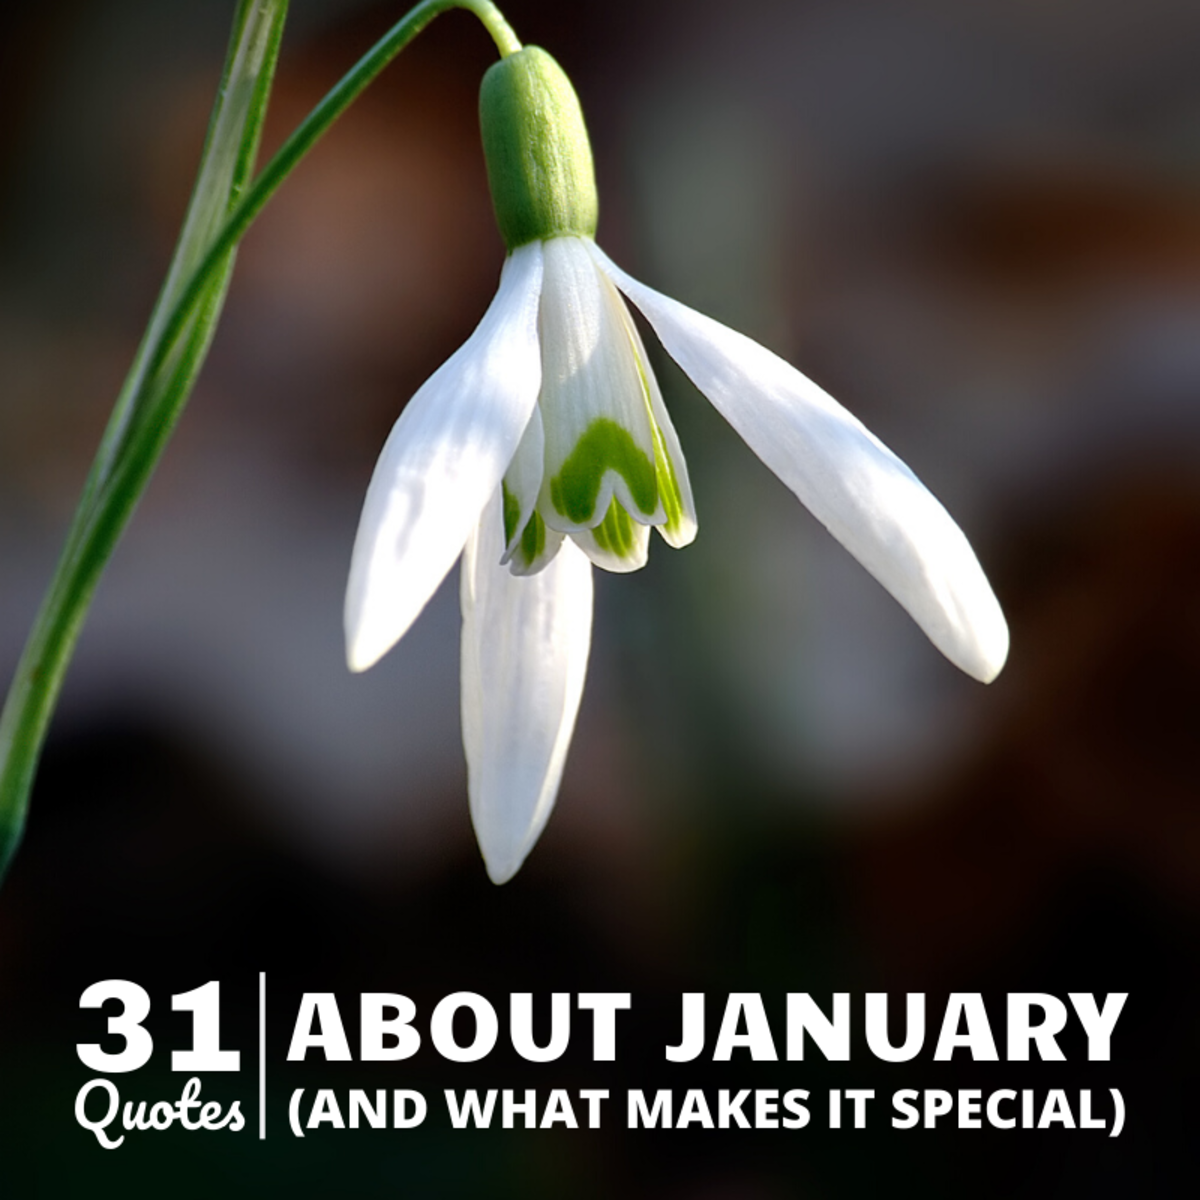 31 Quotes About January and What Makes It Unique